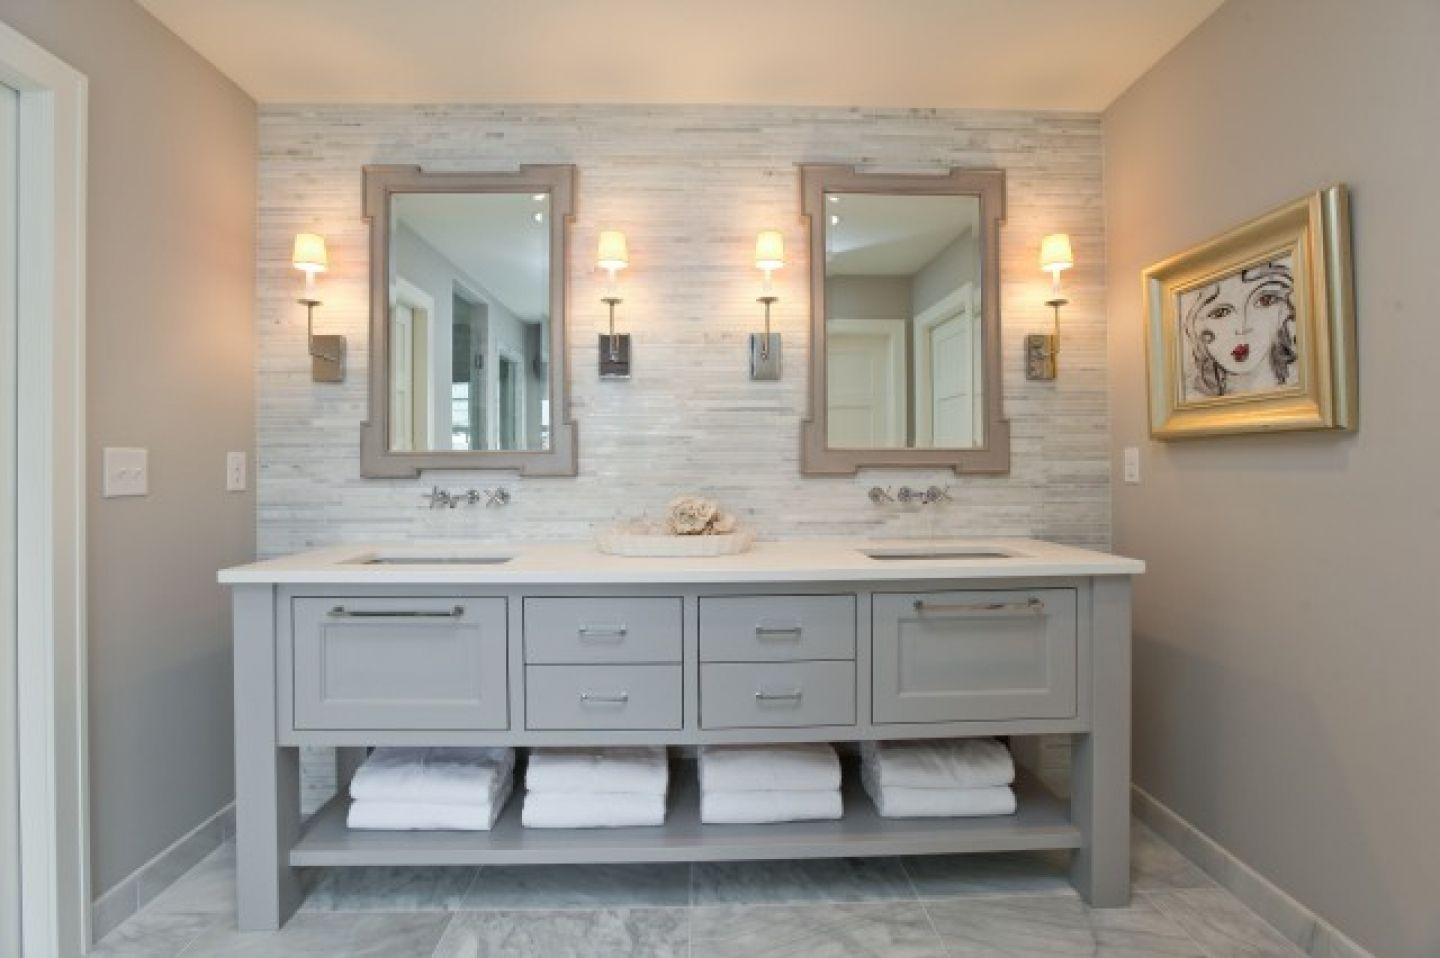 Modern White Bathroom Vanities Design With Images White Vanity Bathroom Easy Bathroom Decorating Grey Bathroom Vanity